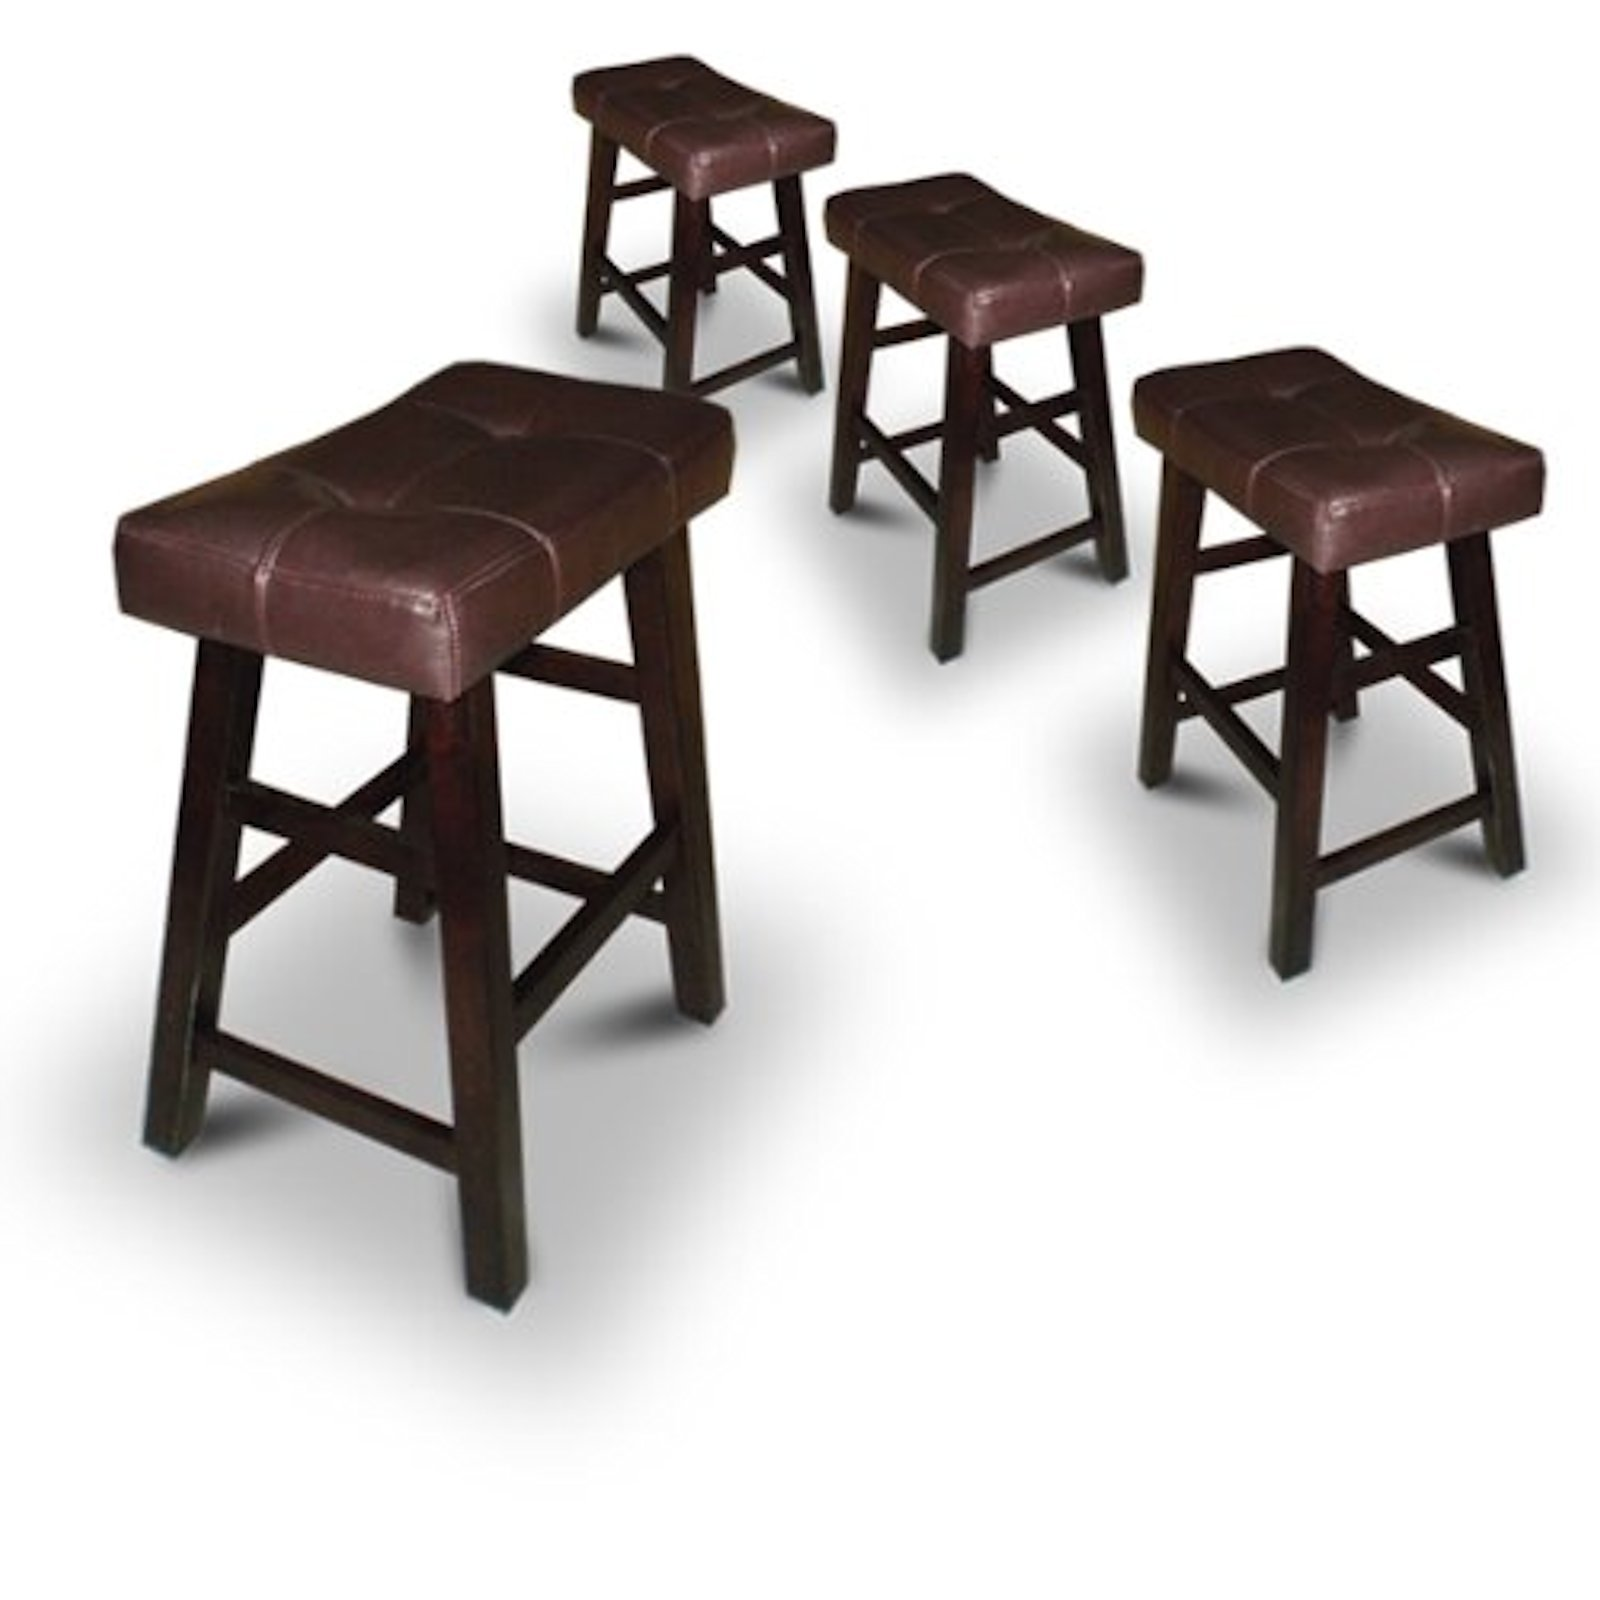 4 29'' Dark Espresso Wood Bar Stools with Bonded Faux Leather Seat